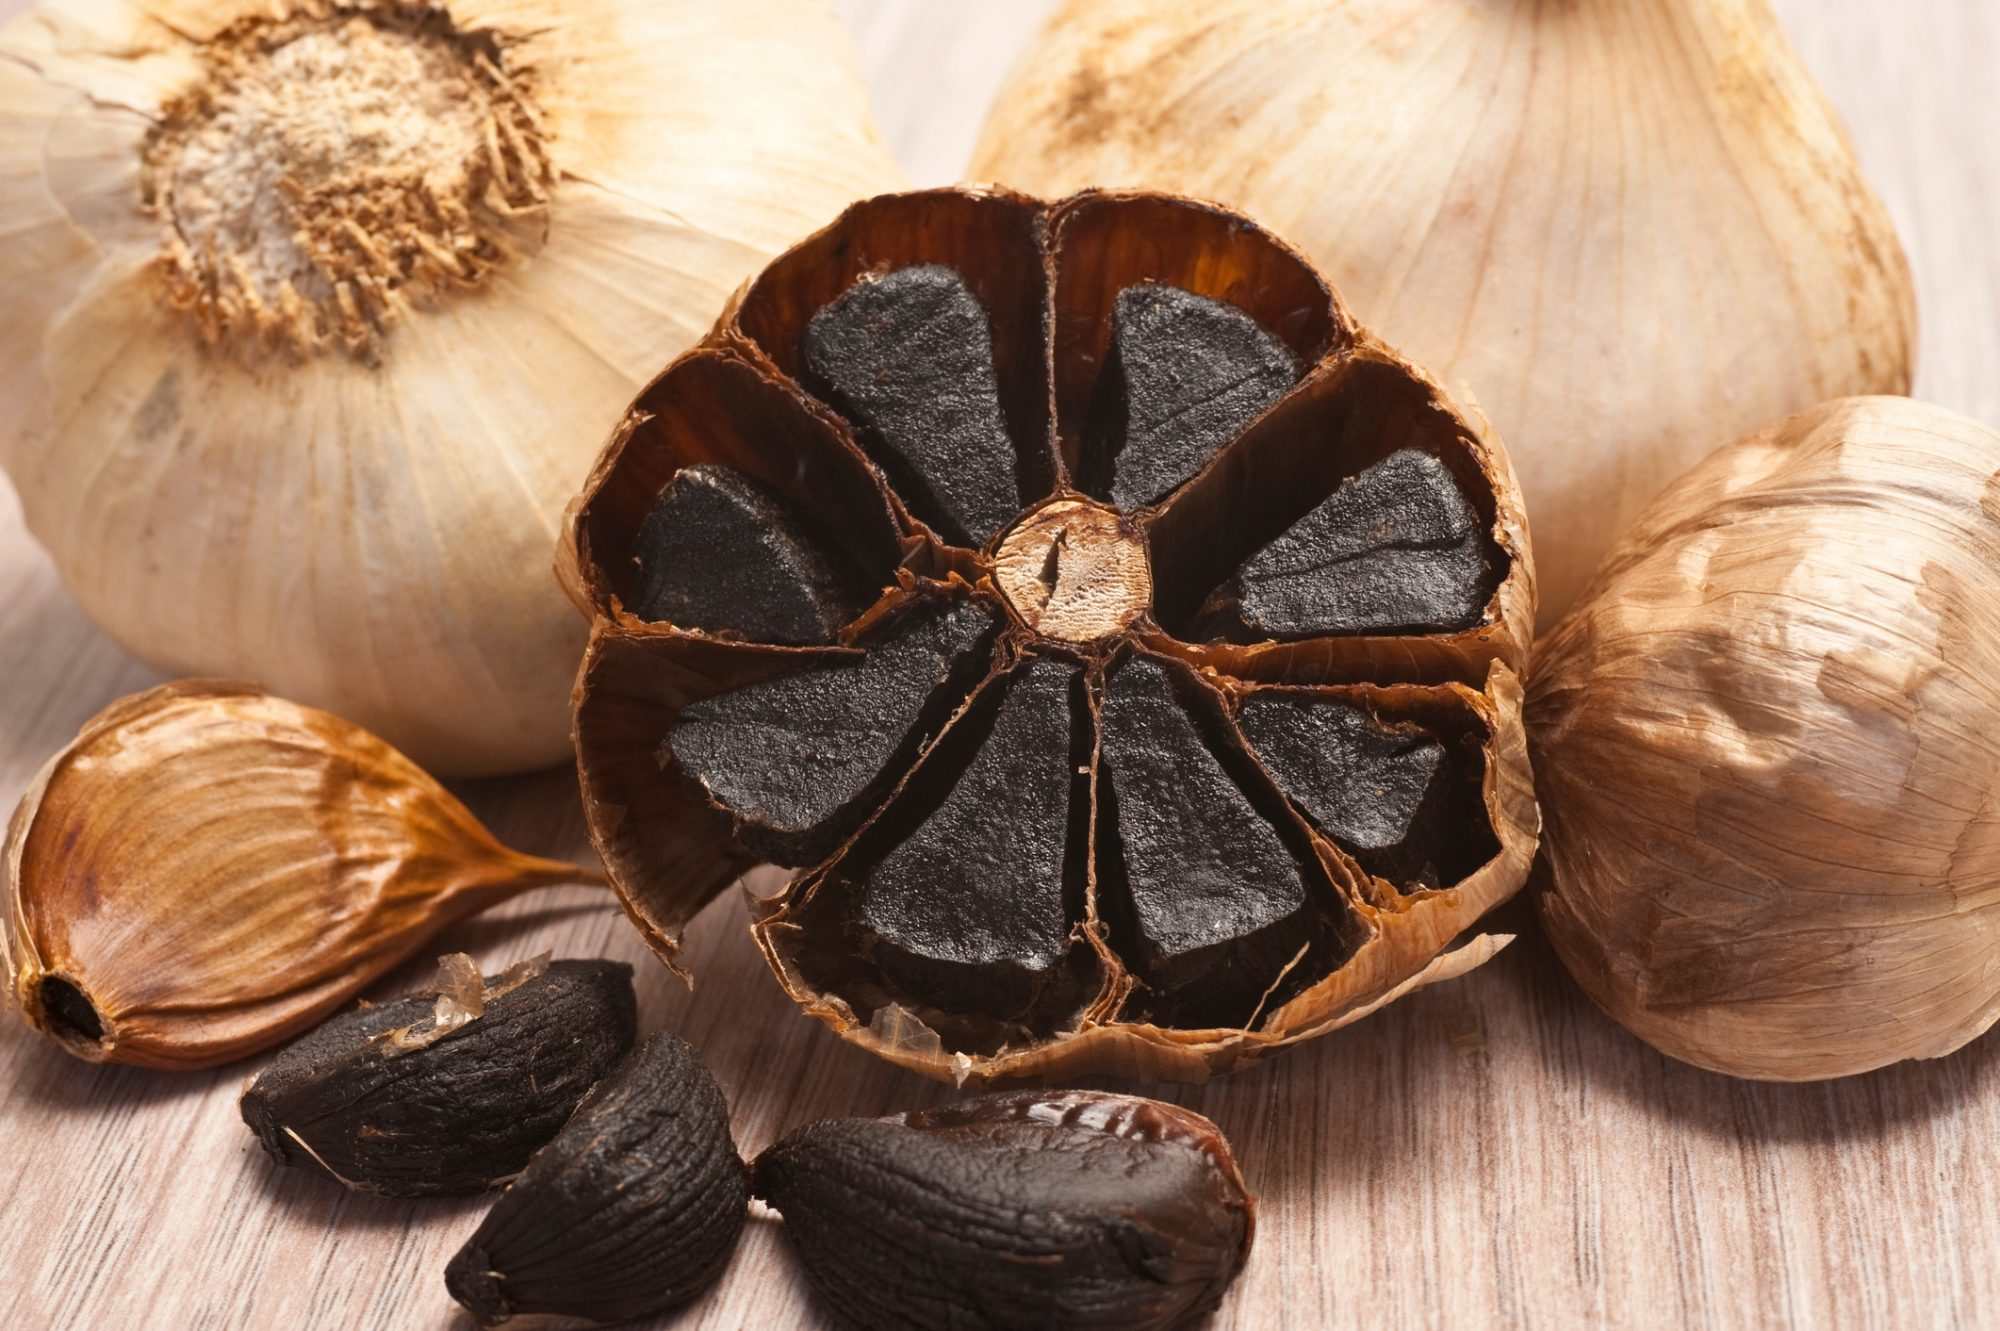 mr black garlic Getty.jpg